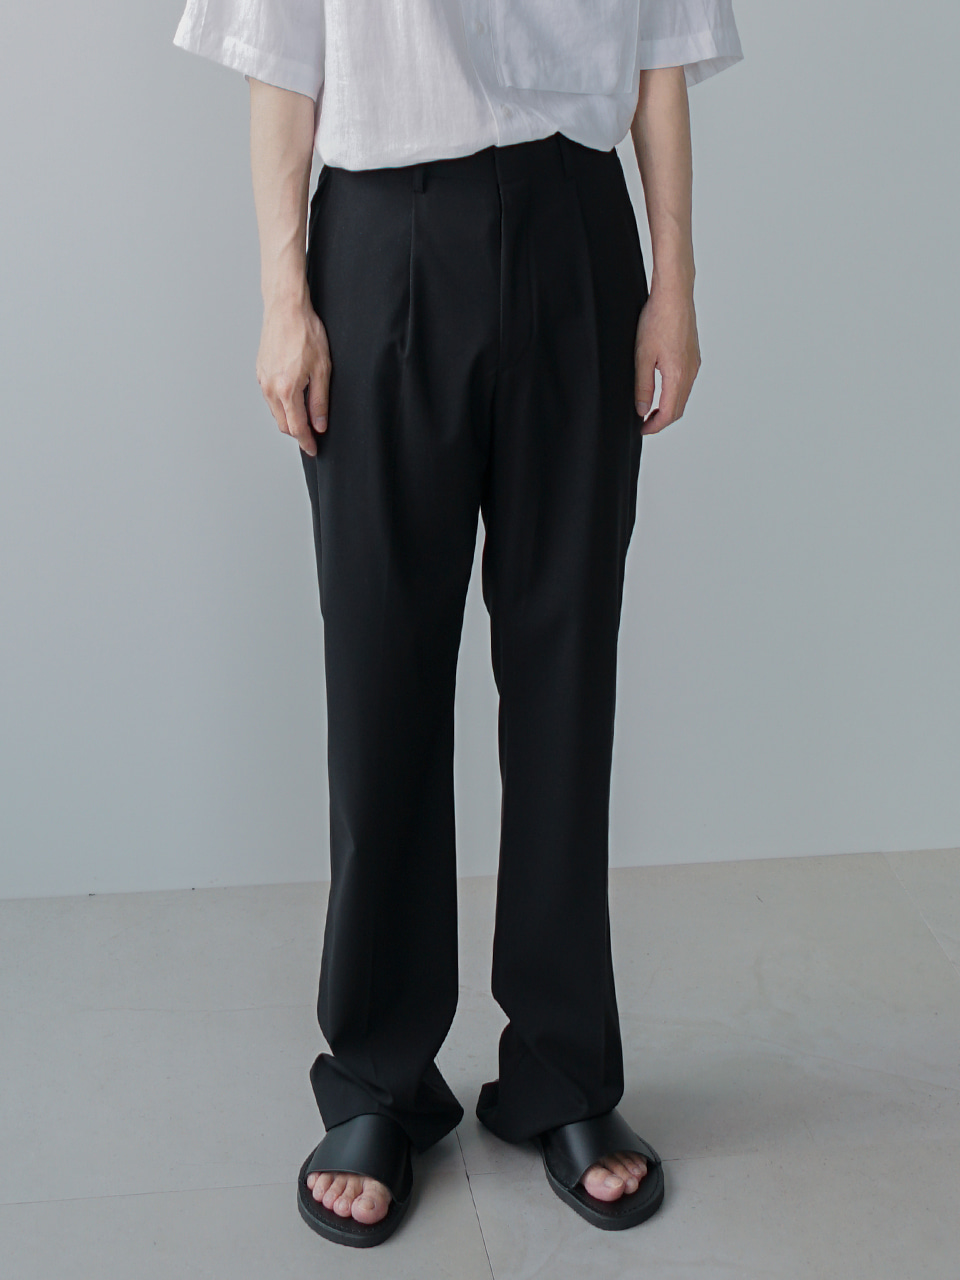 Last Pintuck Summer Trousers (4color)